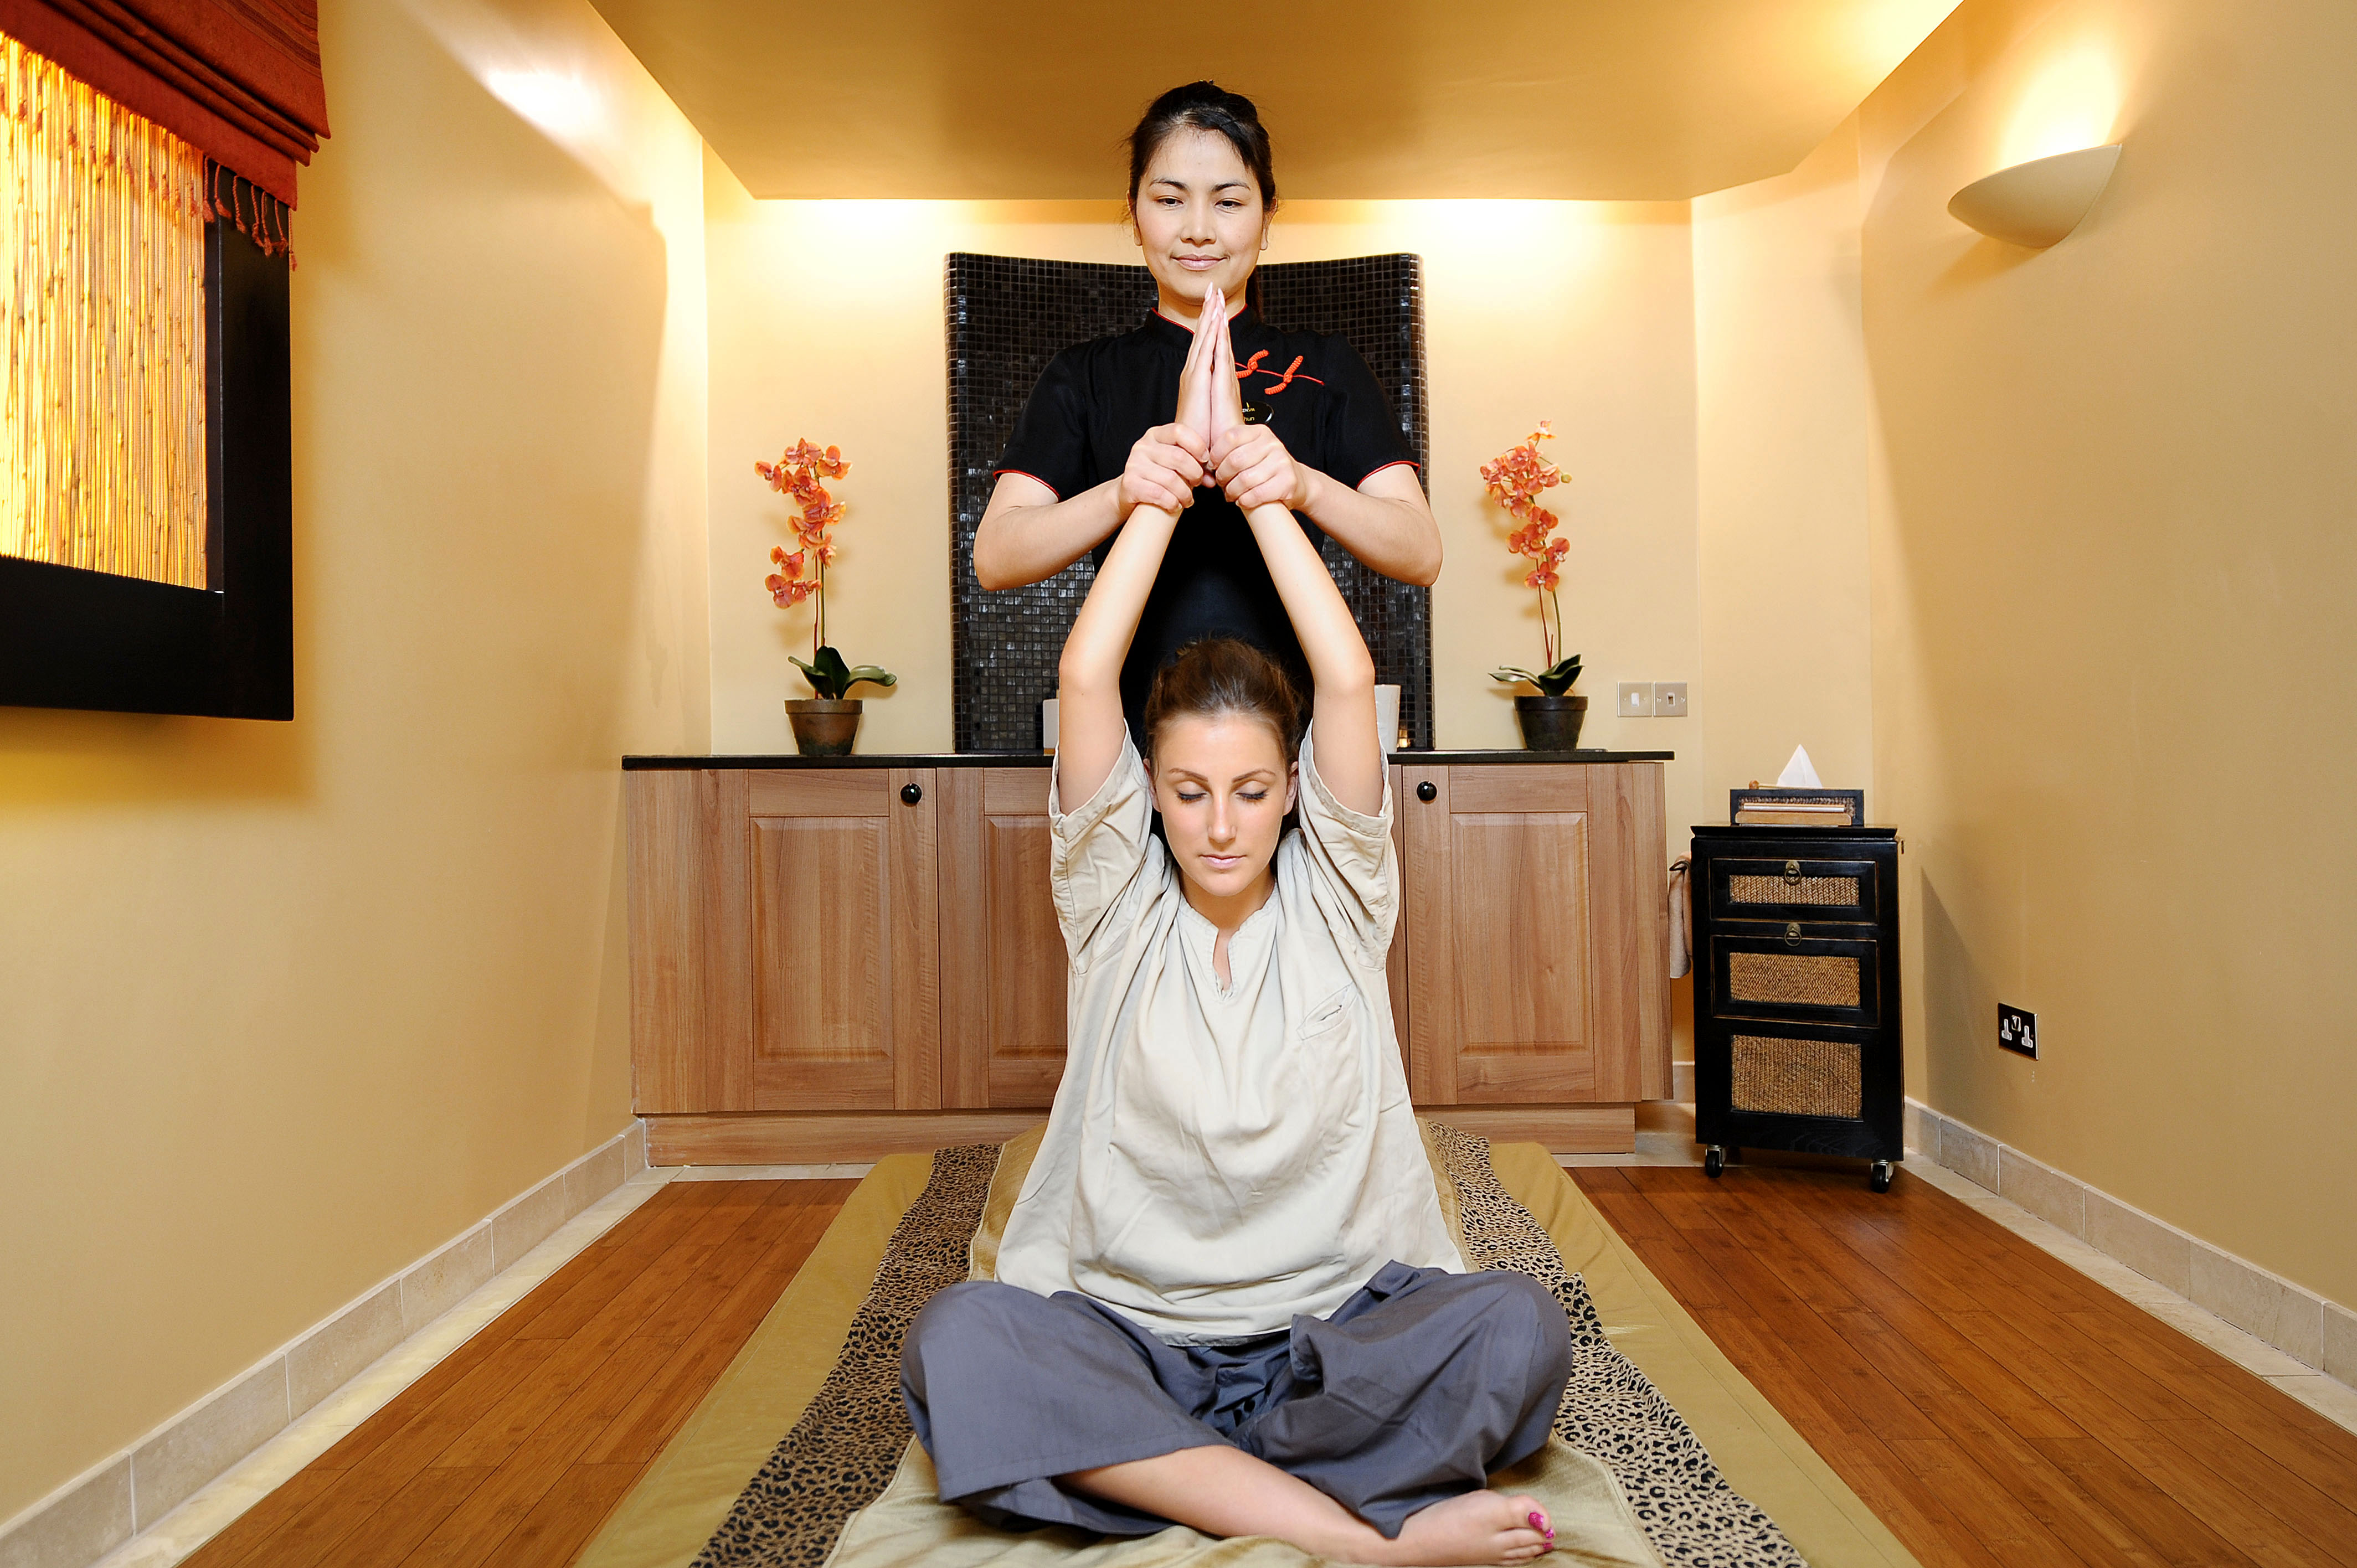 Thai therapist holding woman's arms above her head during a traditional Thai massage.